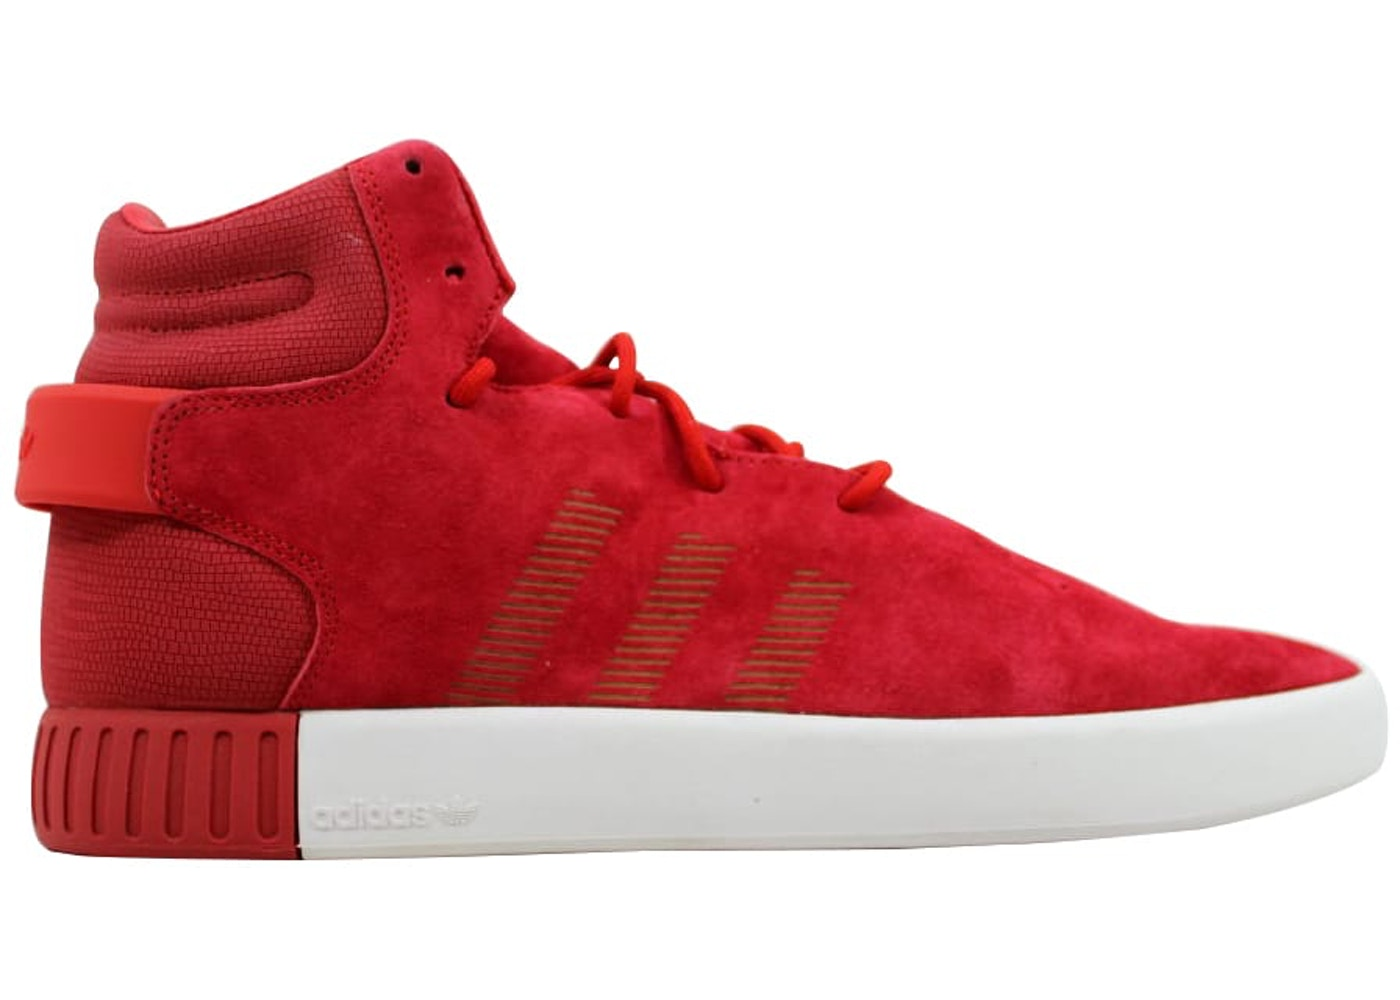 detailed pictures abe5c d80f5 adidas Tubular Invader Red/Red-Vintage White - S81963